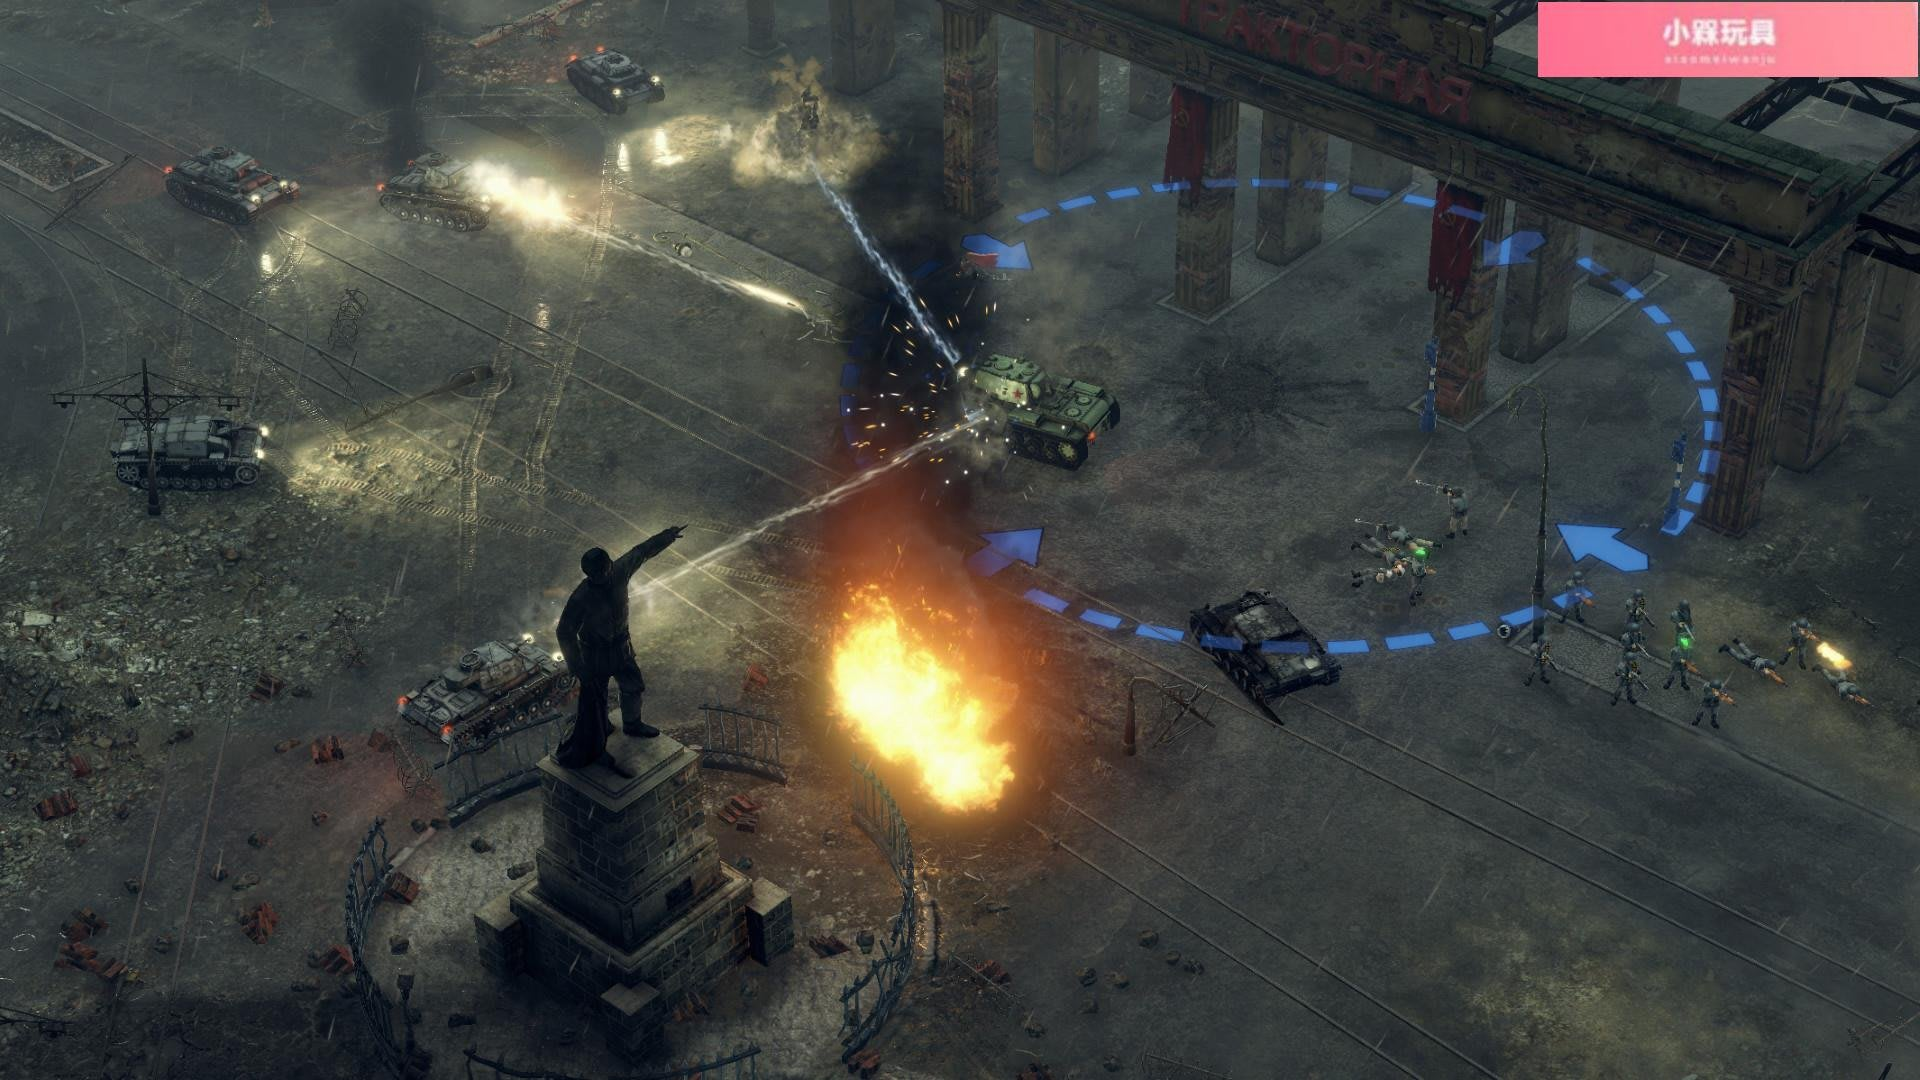 ₪小槑玩具₪PC中文正版Steam Sudden Strike 4 突襲4 RTS策略大作